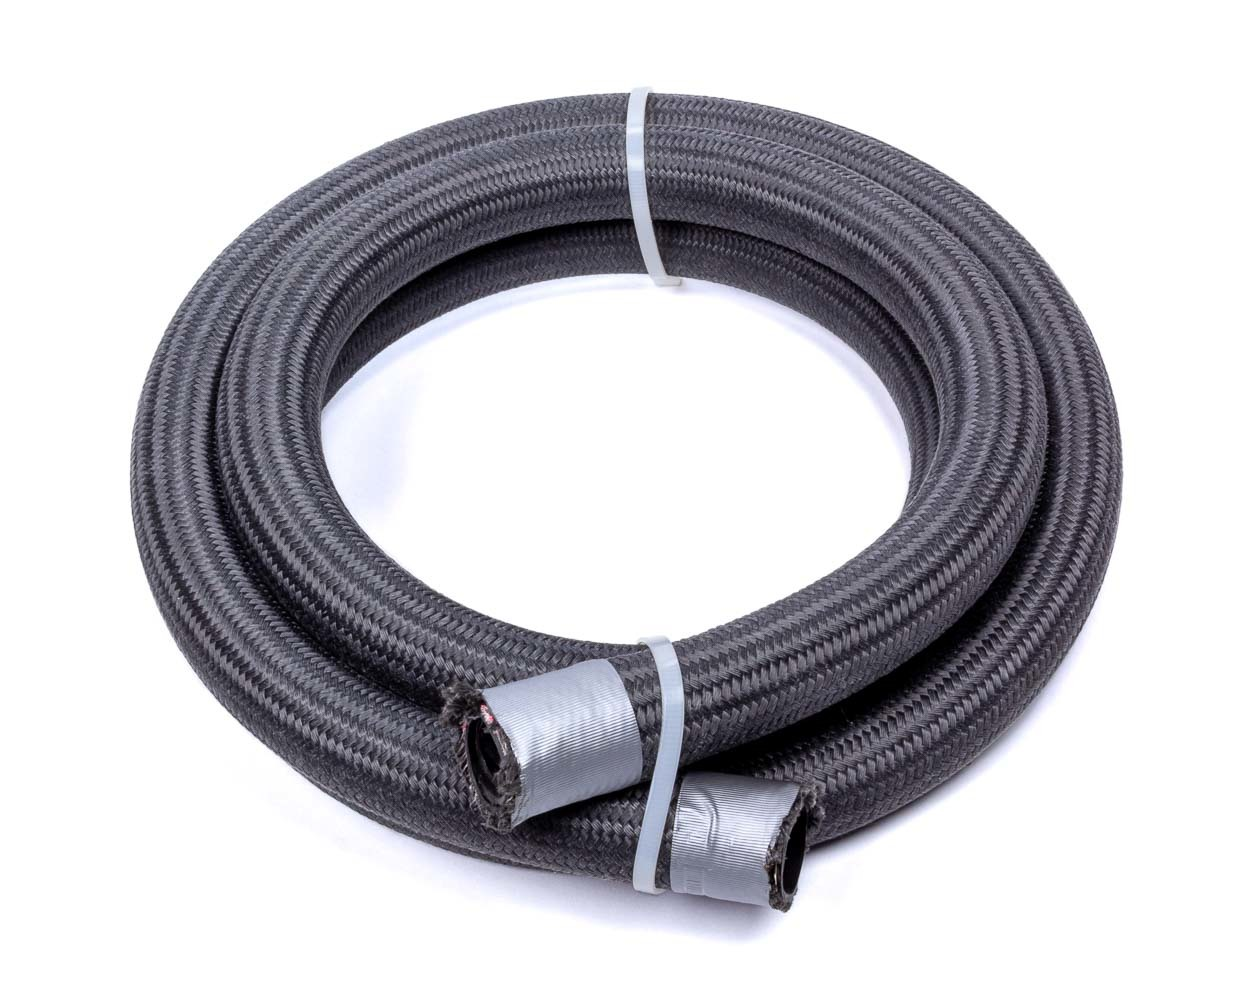 Fragola 2711012 Hose, Race-Rite Pro, 12 AN, 10 ft, Braided Fire Retardant Fabric, Wire Reinforced, PTFE, Black, Each